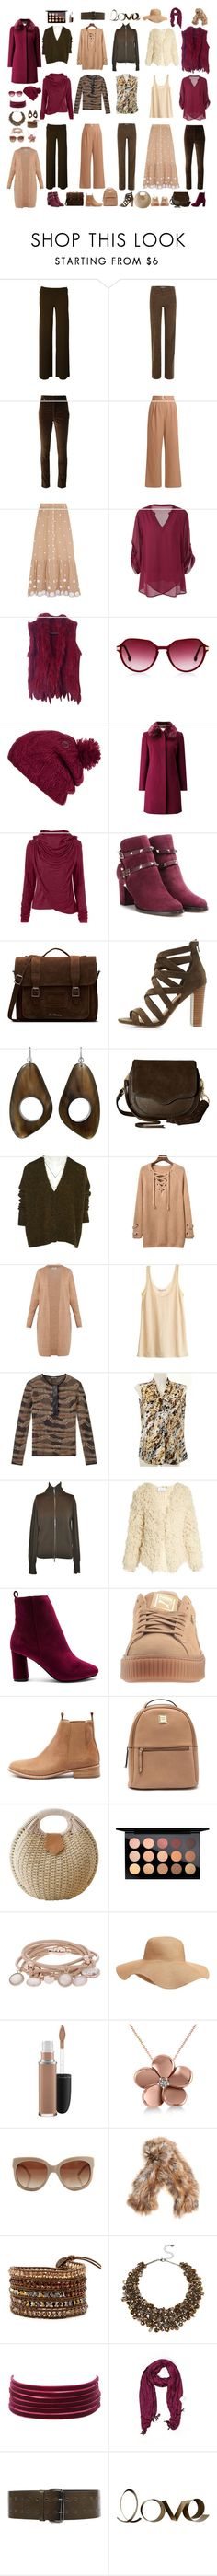 """Chocolate Raspberry"" by pheonix-dt ❤ liked on Polyvore featuring Vanessa Bruno, Isabel Marant, TIBI, Miguelina, Steven Alan, Volcom, Jacques Vert, Valentino, Dr. Martens and Charlotte Russe"